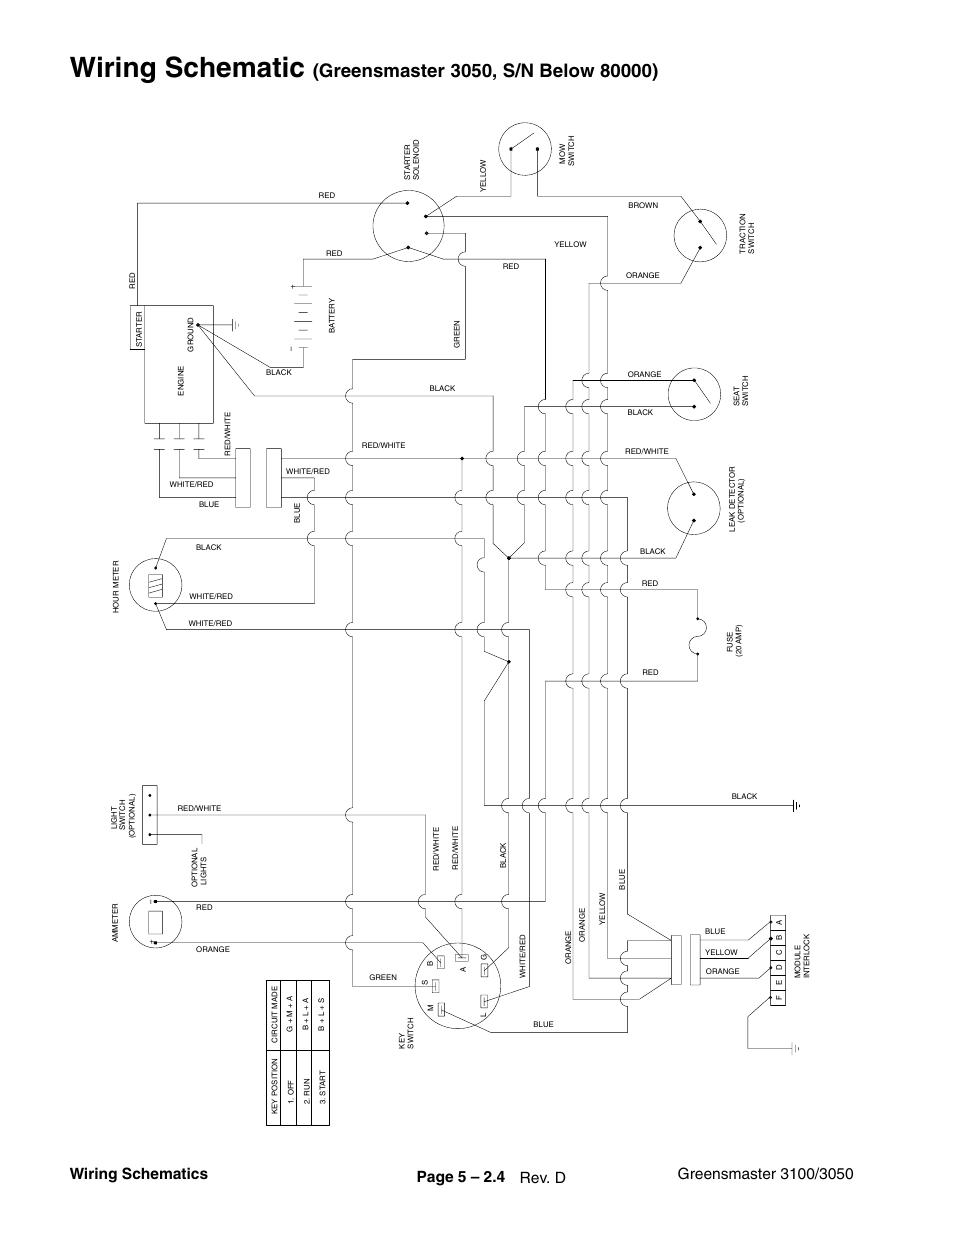 Wiring Diagram Pdf  2002 Sterling Wiring Diagram